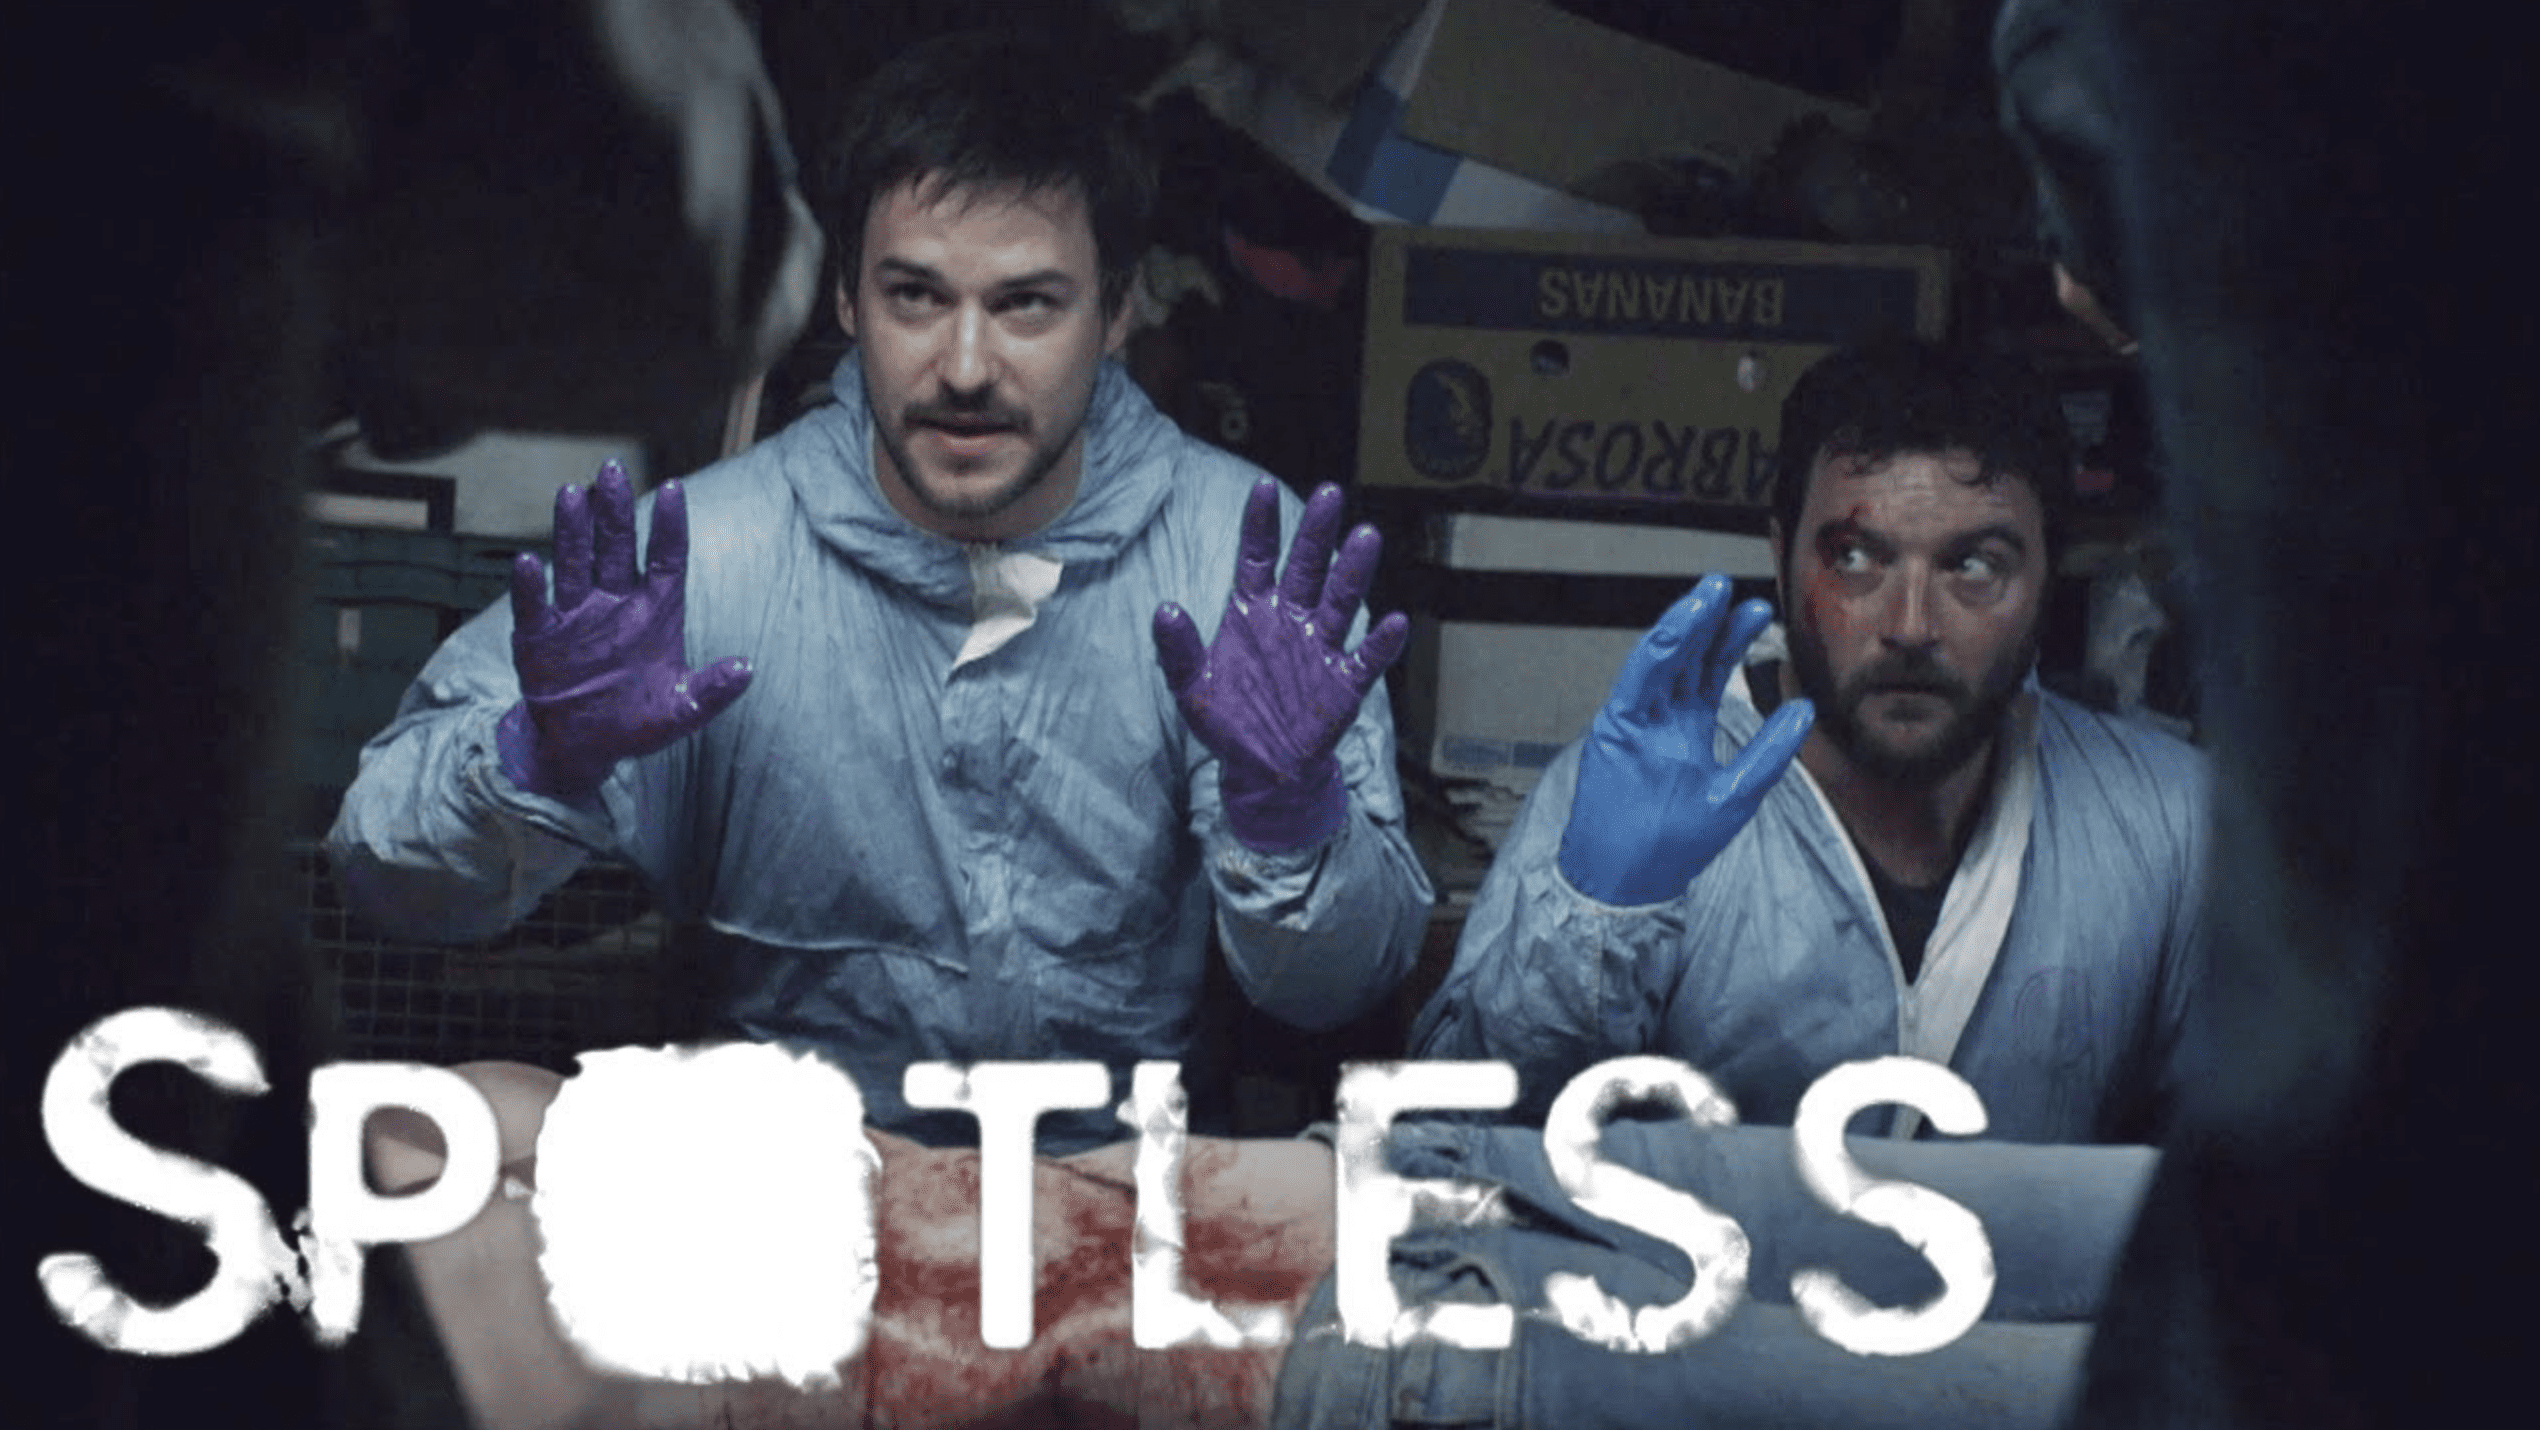 What-to-Watch -Spotless-on-Netflix